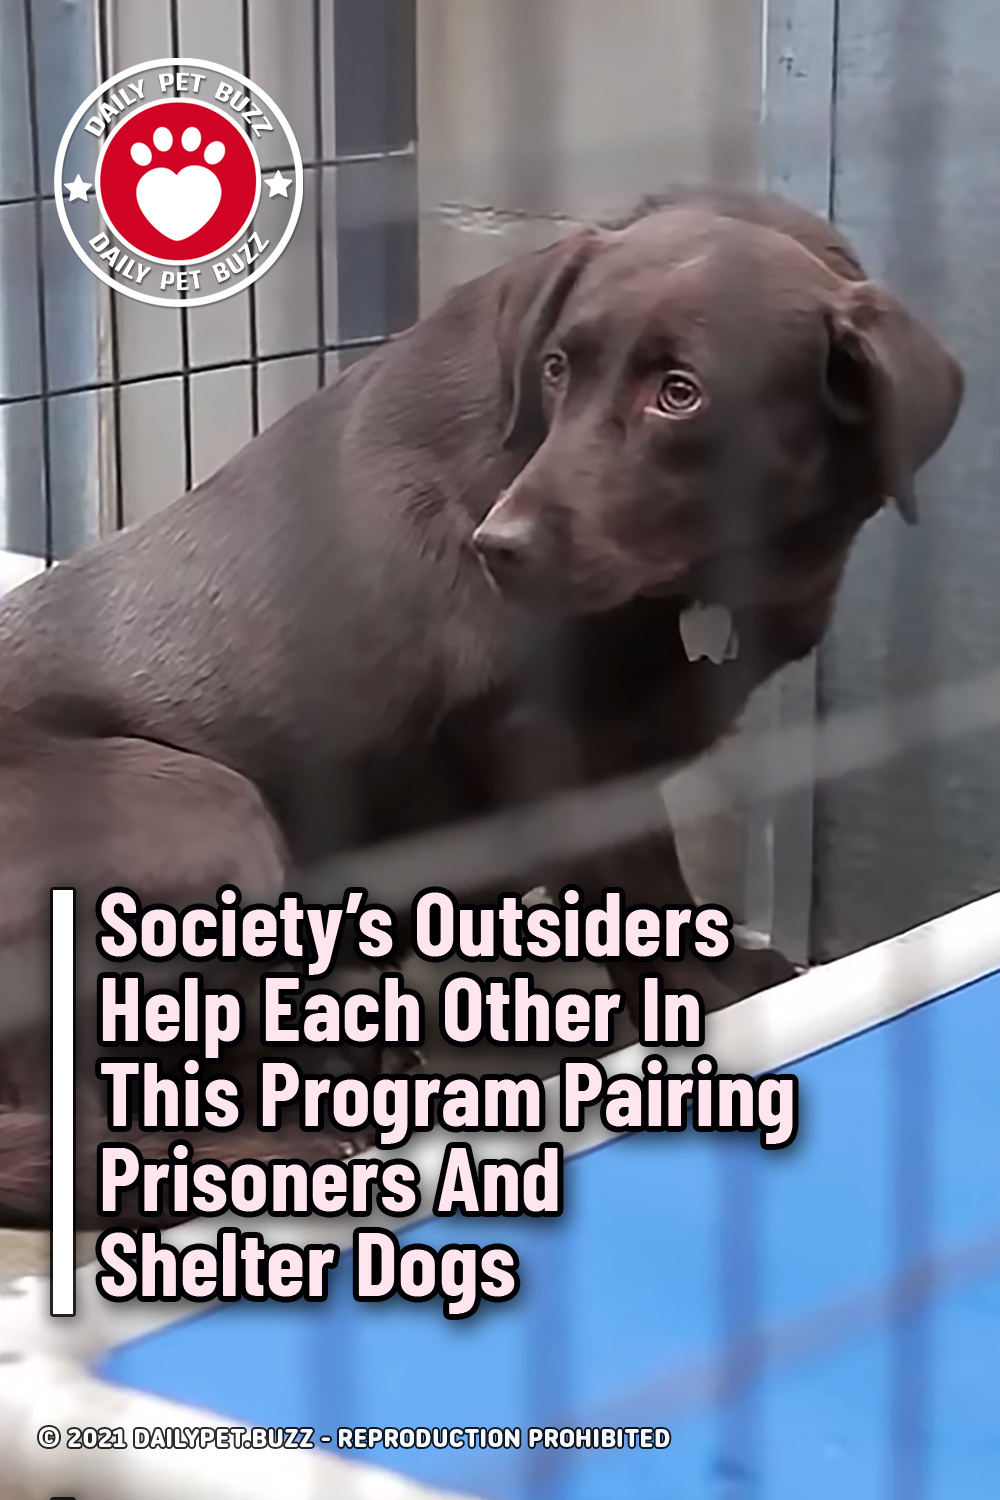 Society\'s Outsiders Help Each Other In This Program Pairing Prisoners And Shelter Dogs